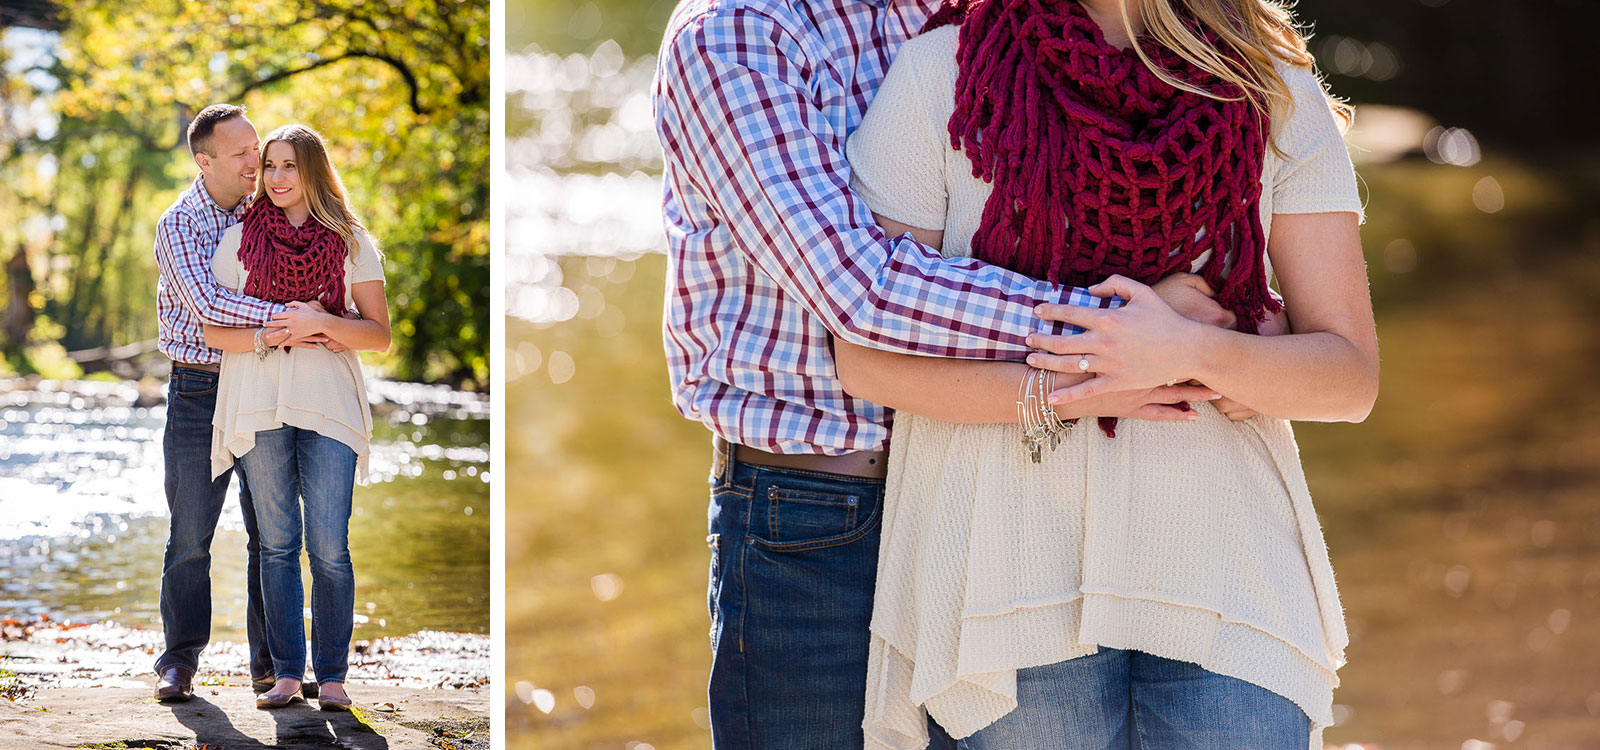 Eric_and_Christy_Photography_Blog_Megan_Nate_Engagement-9-10